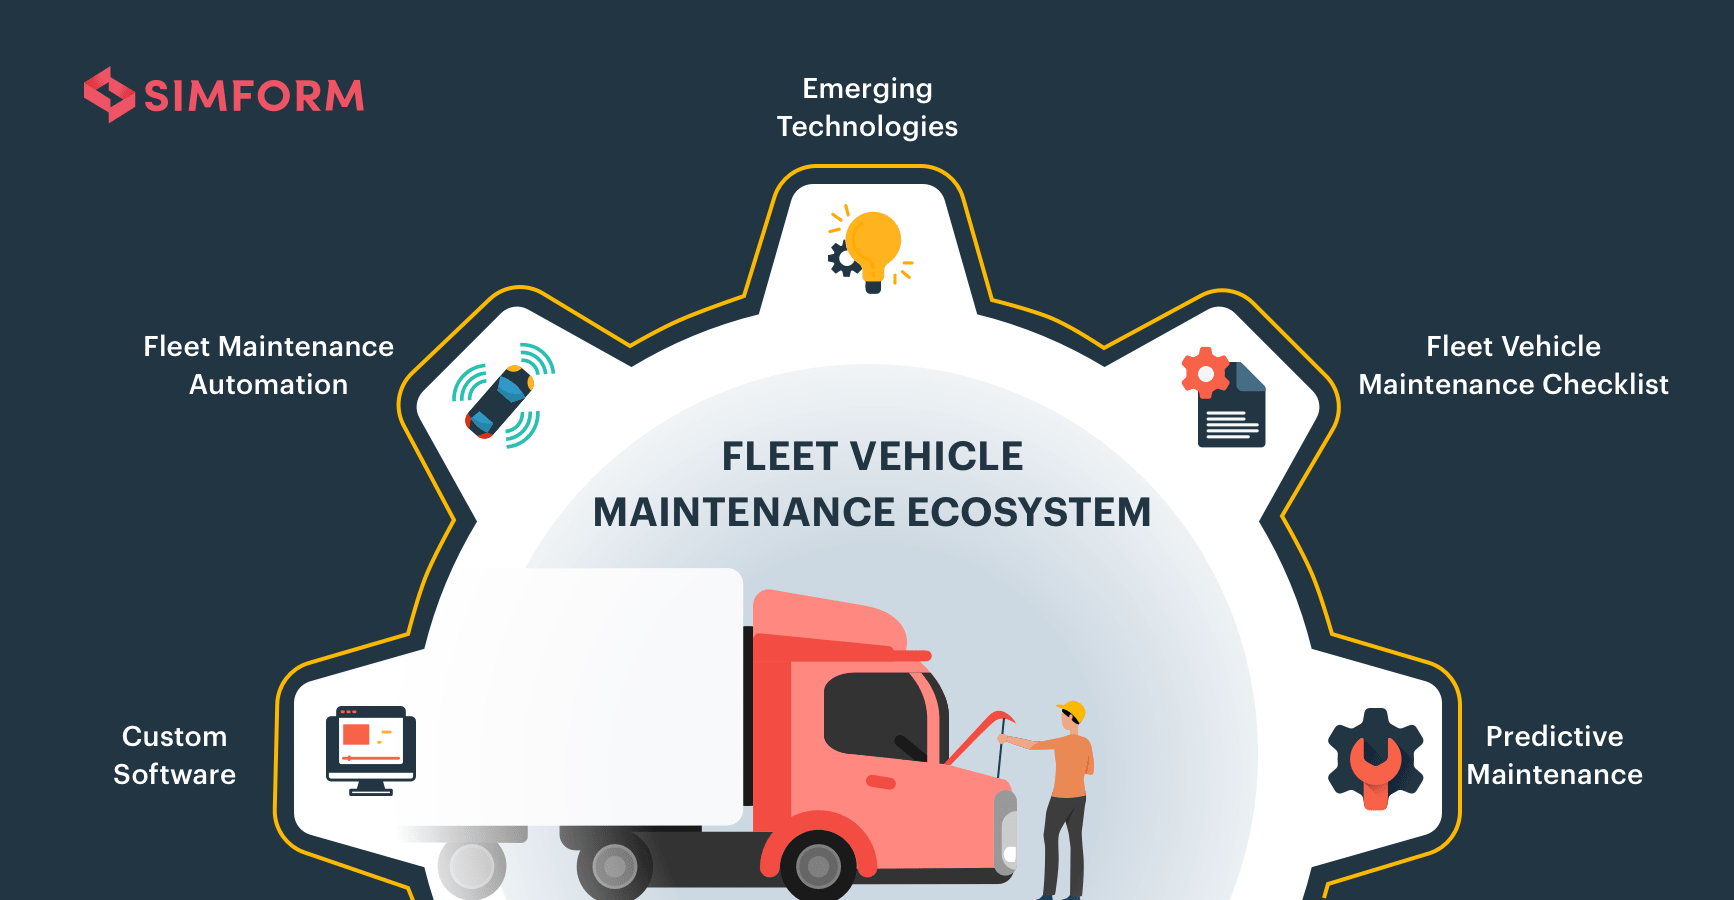 Fleet-Vehicle-Maintenance-Ecosystem-Banner